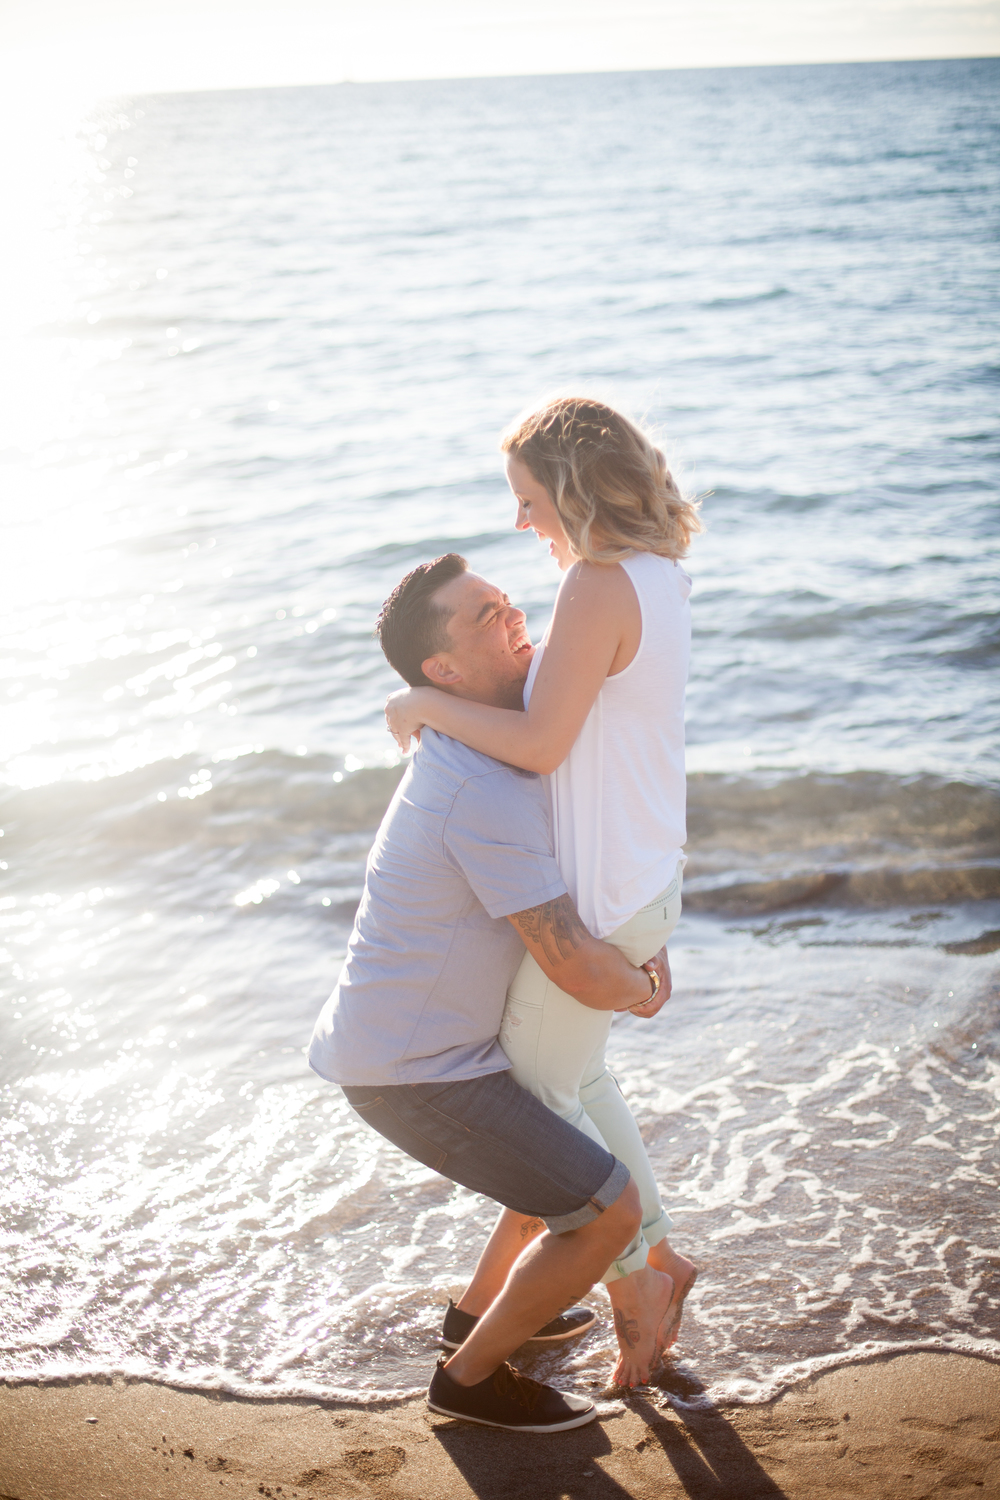 big island hawaii engagement photography 20150529181248-1.jpg